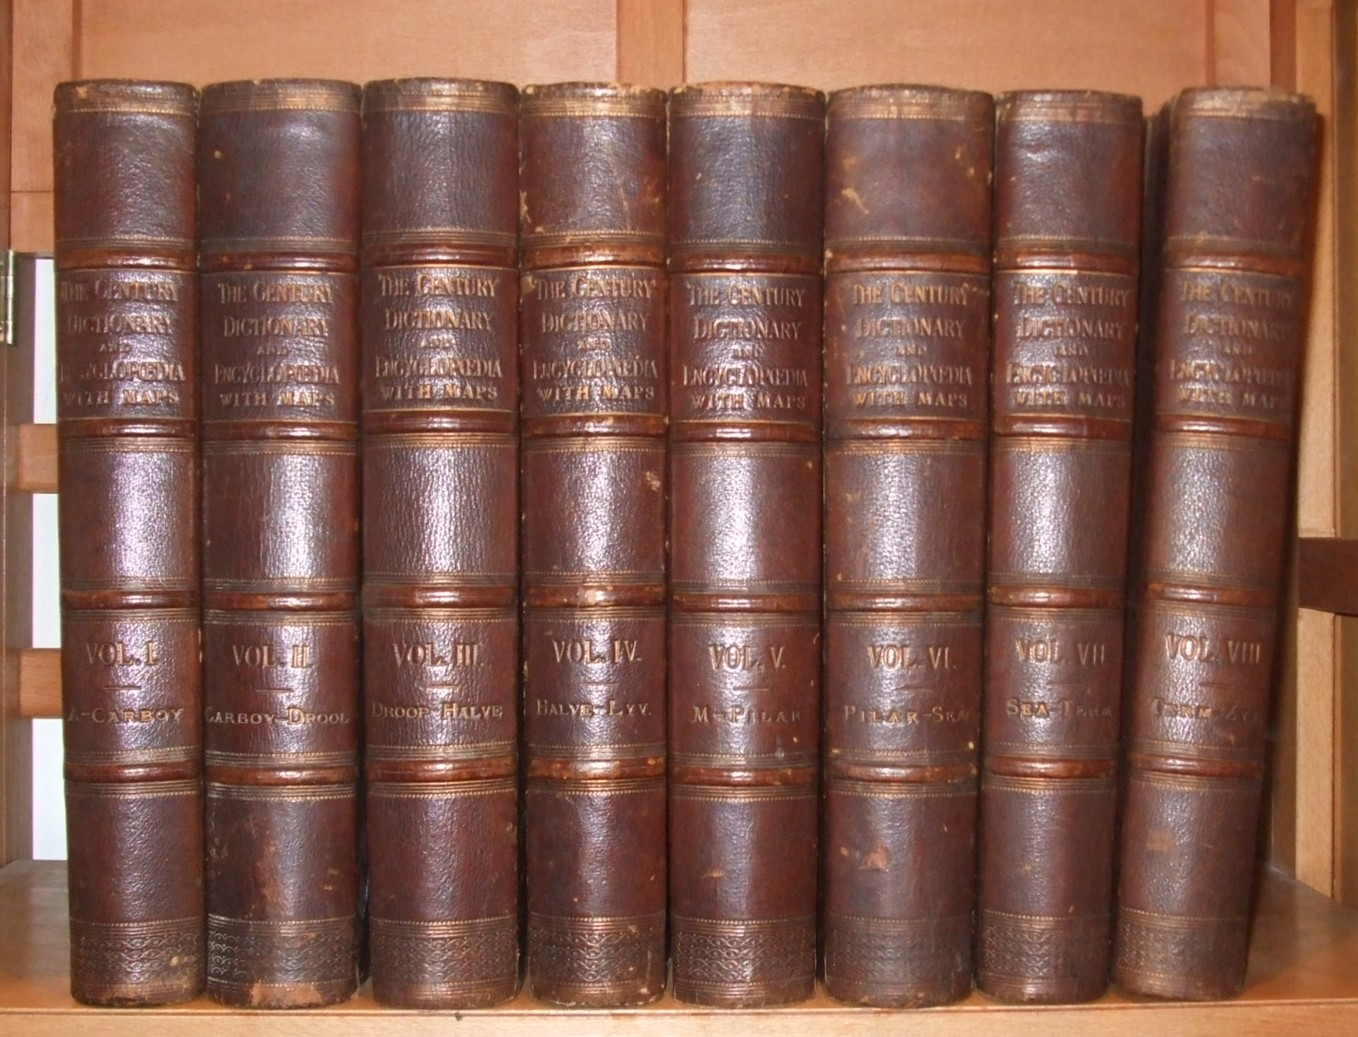 Image for The Century Dictionary an Encyclopedic Lexicon of the English Language [ Complete in 8 Volumes. Leather Bindings ]